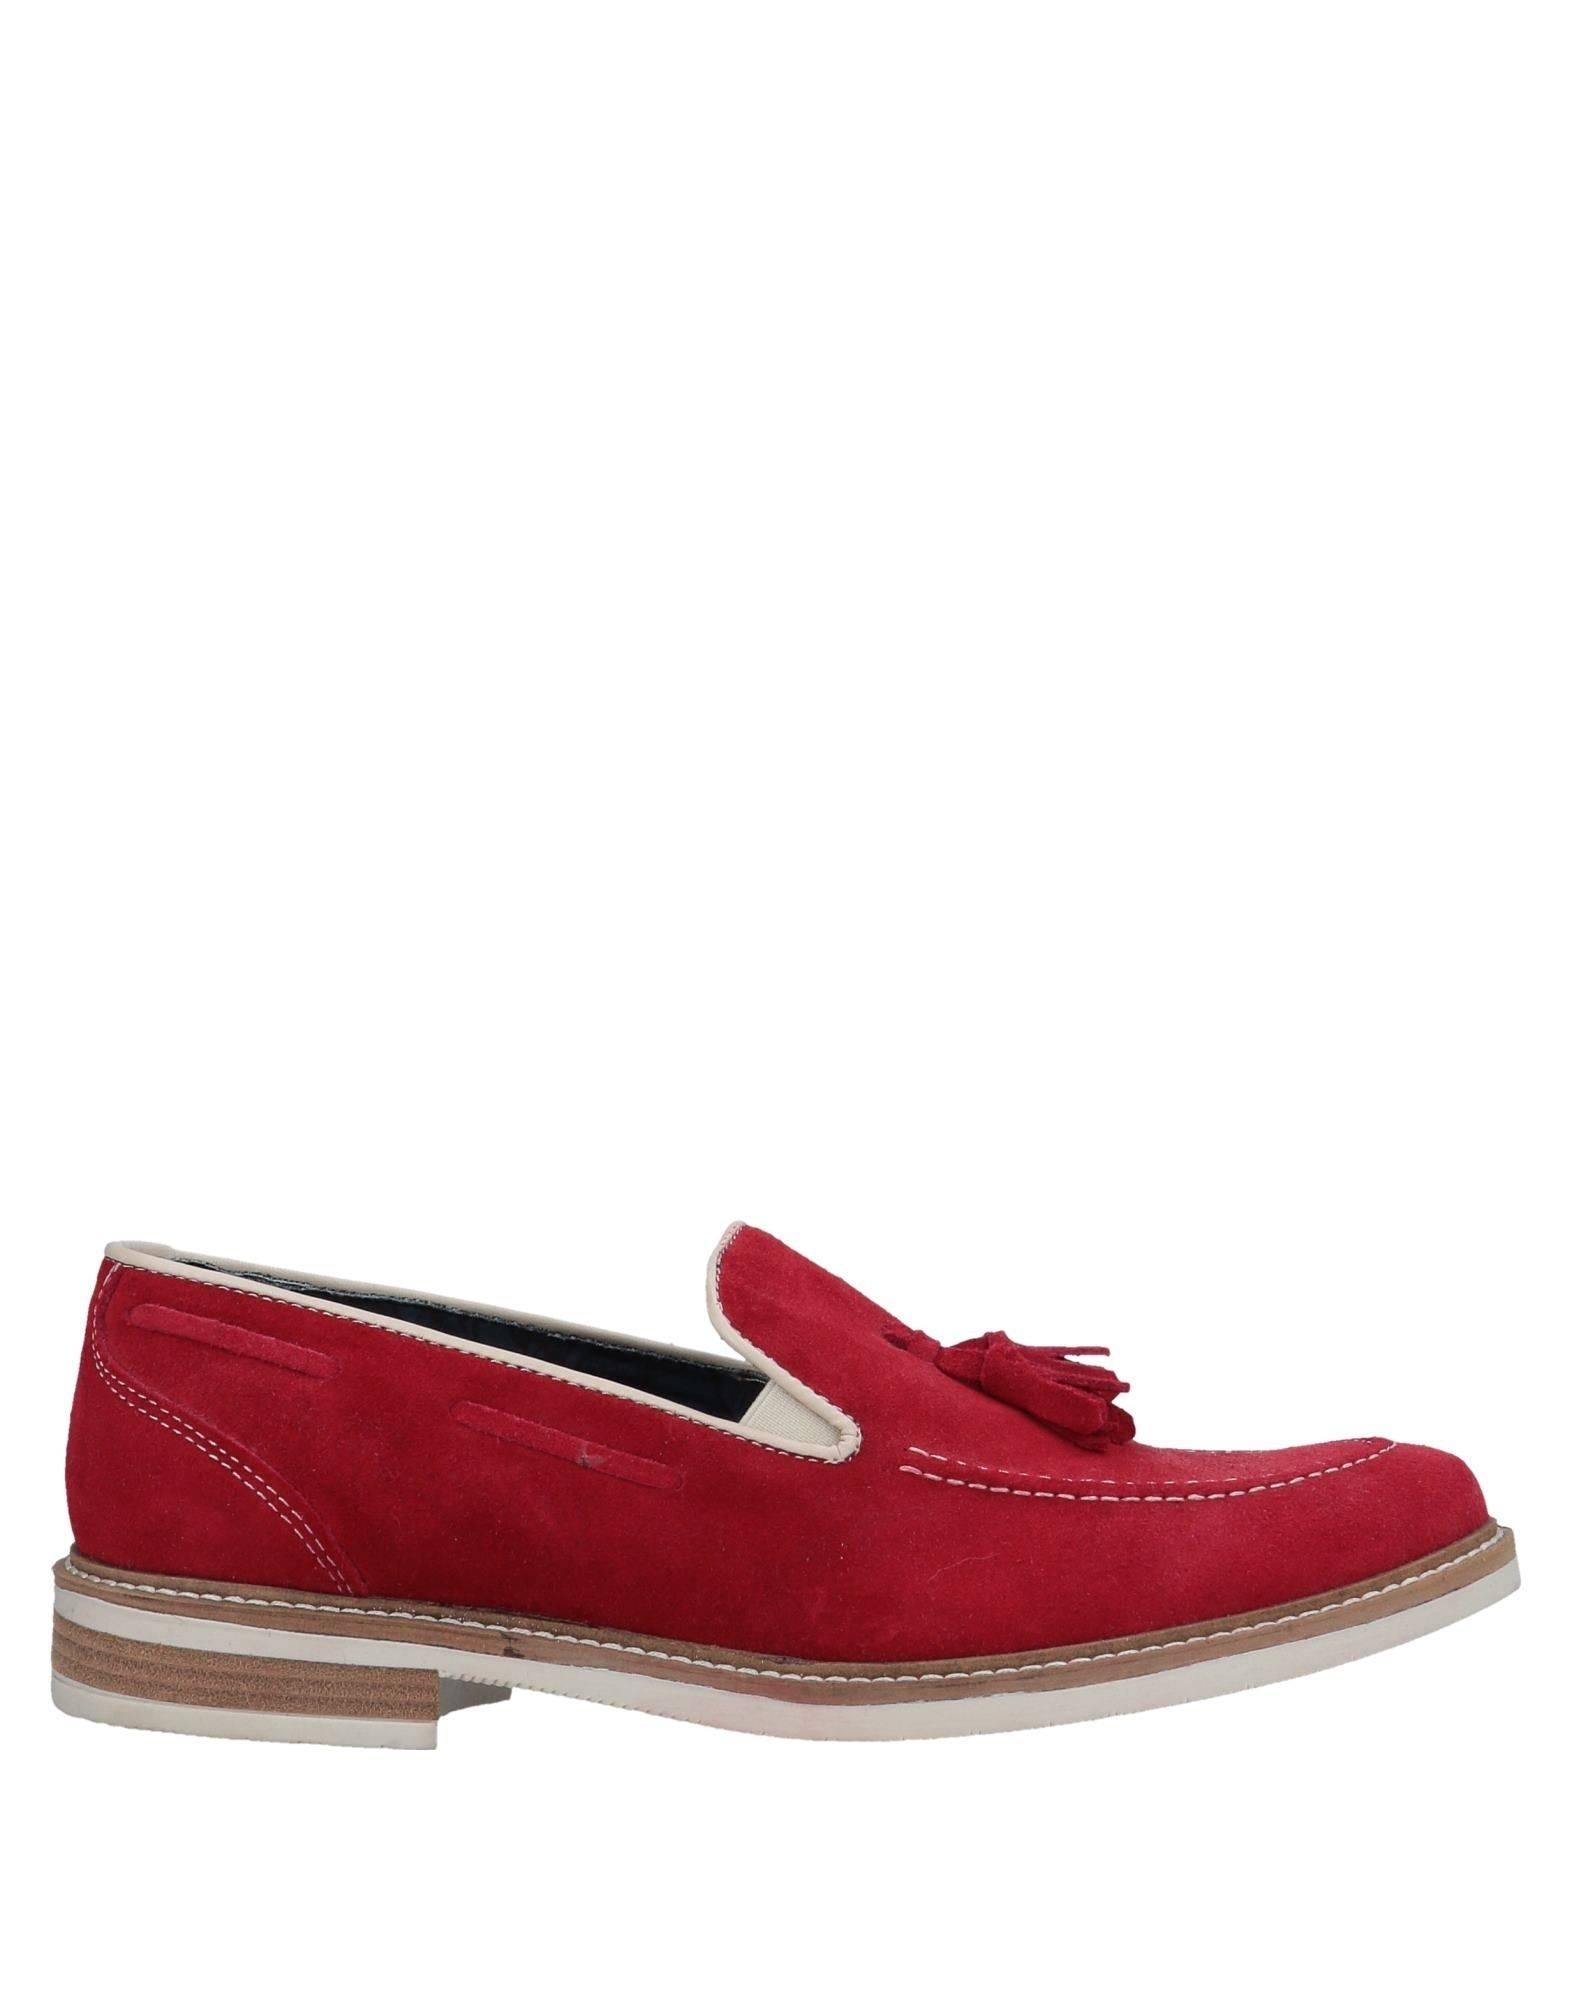 At.P.Co Loafers - Men At.P.Co Loafers online 11158558SP on  Australia - 11158558SP online a97cf5